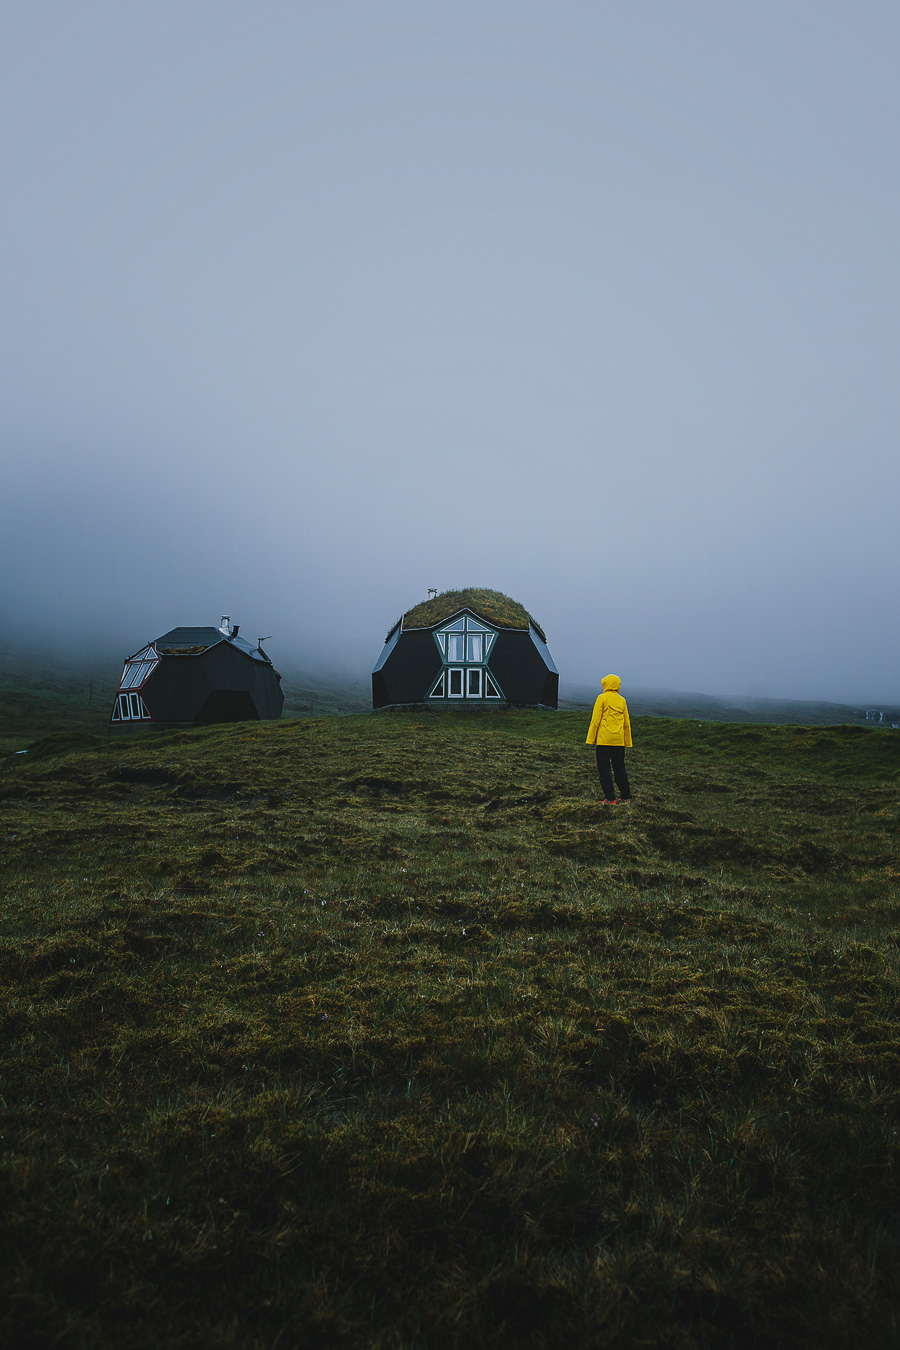 Woman in yellow jacket looking up at two round houses